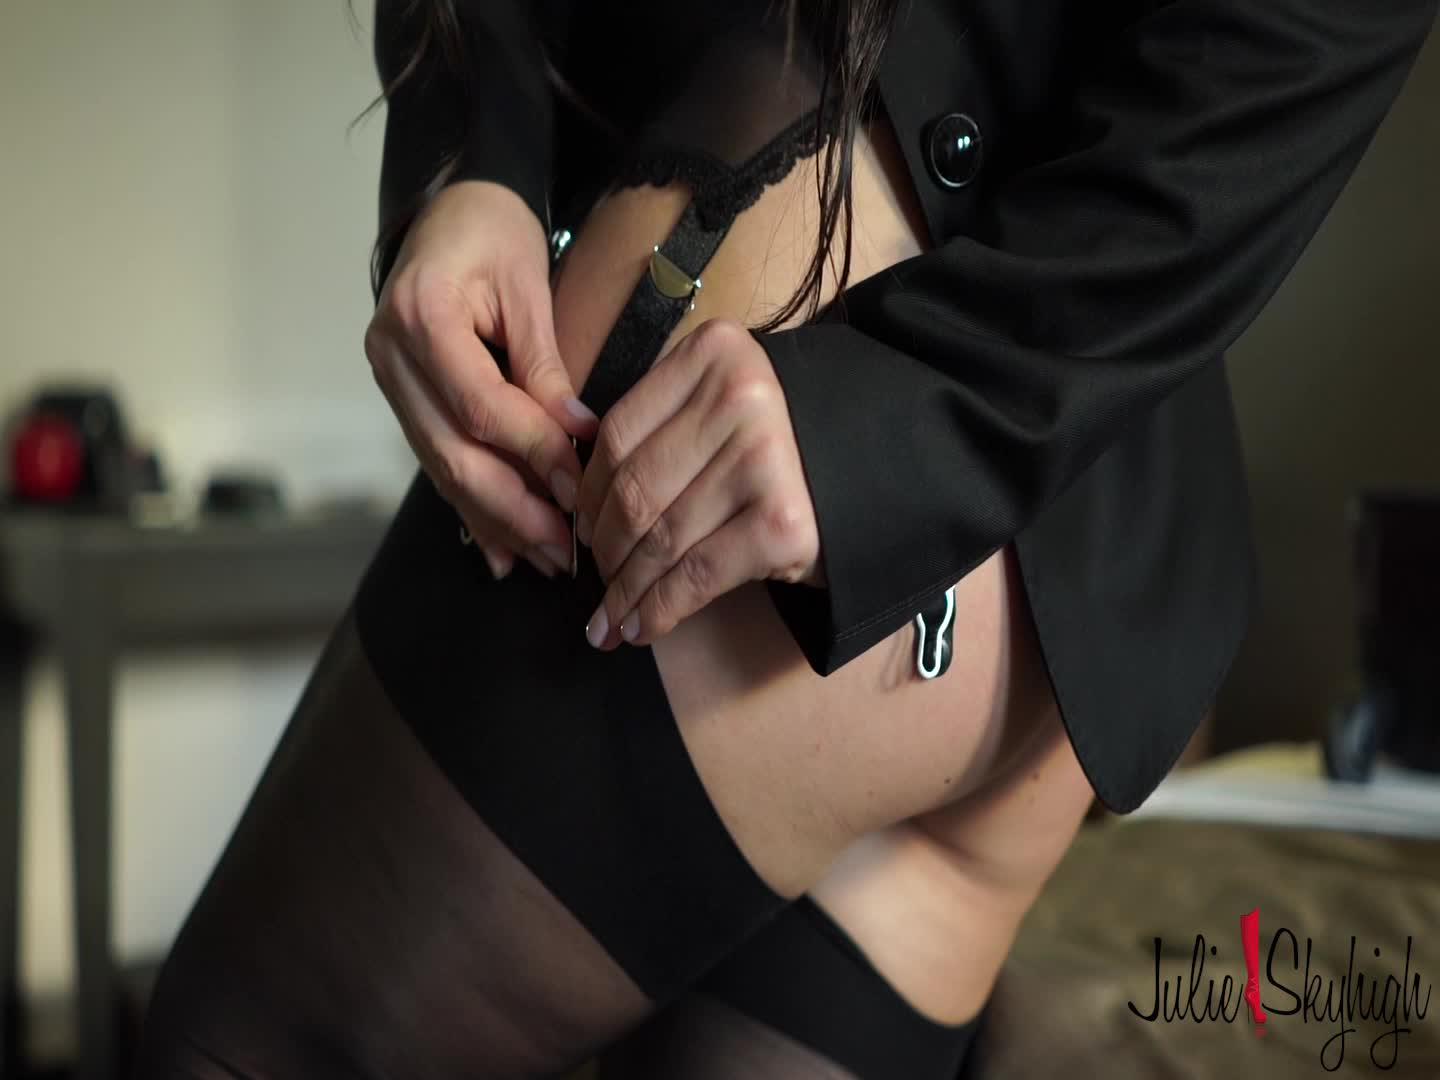 """julie skyhigh"" (Garter & Stockings, High Heels, Secretary, Stocking) Cassie Fire gets ready for the shooting - ManyVids Production"